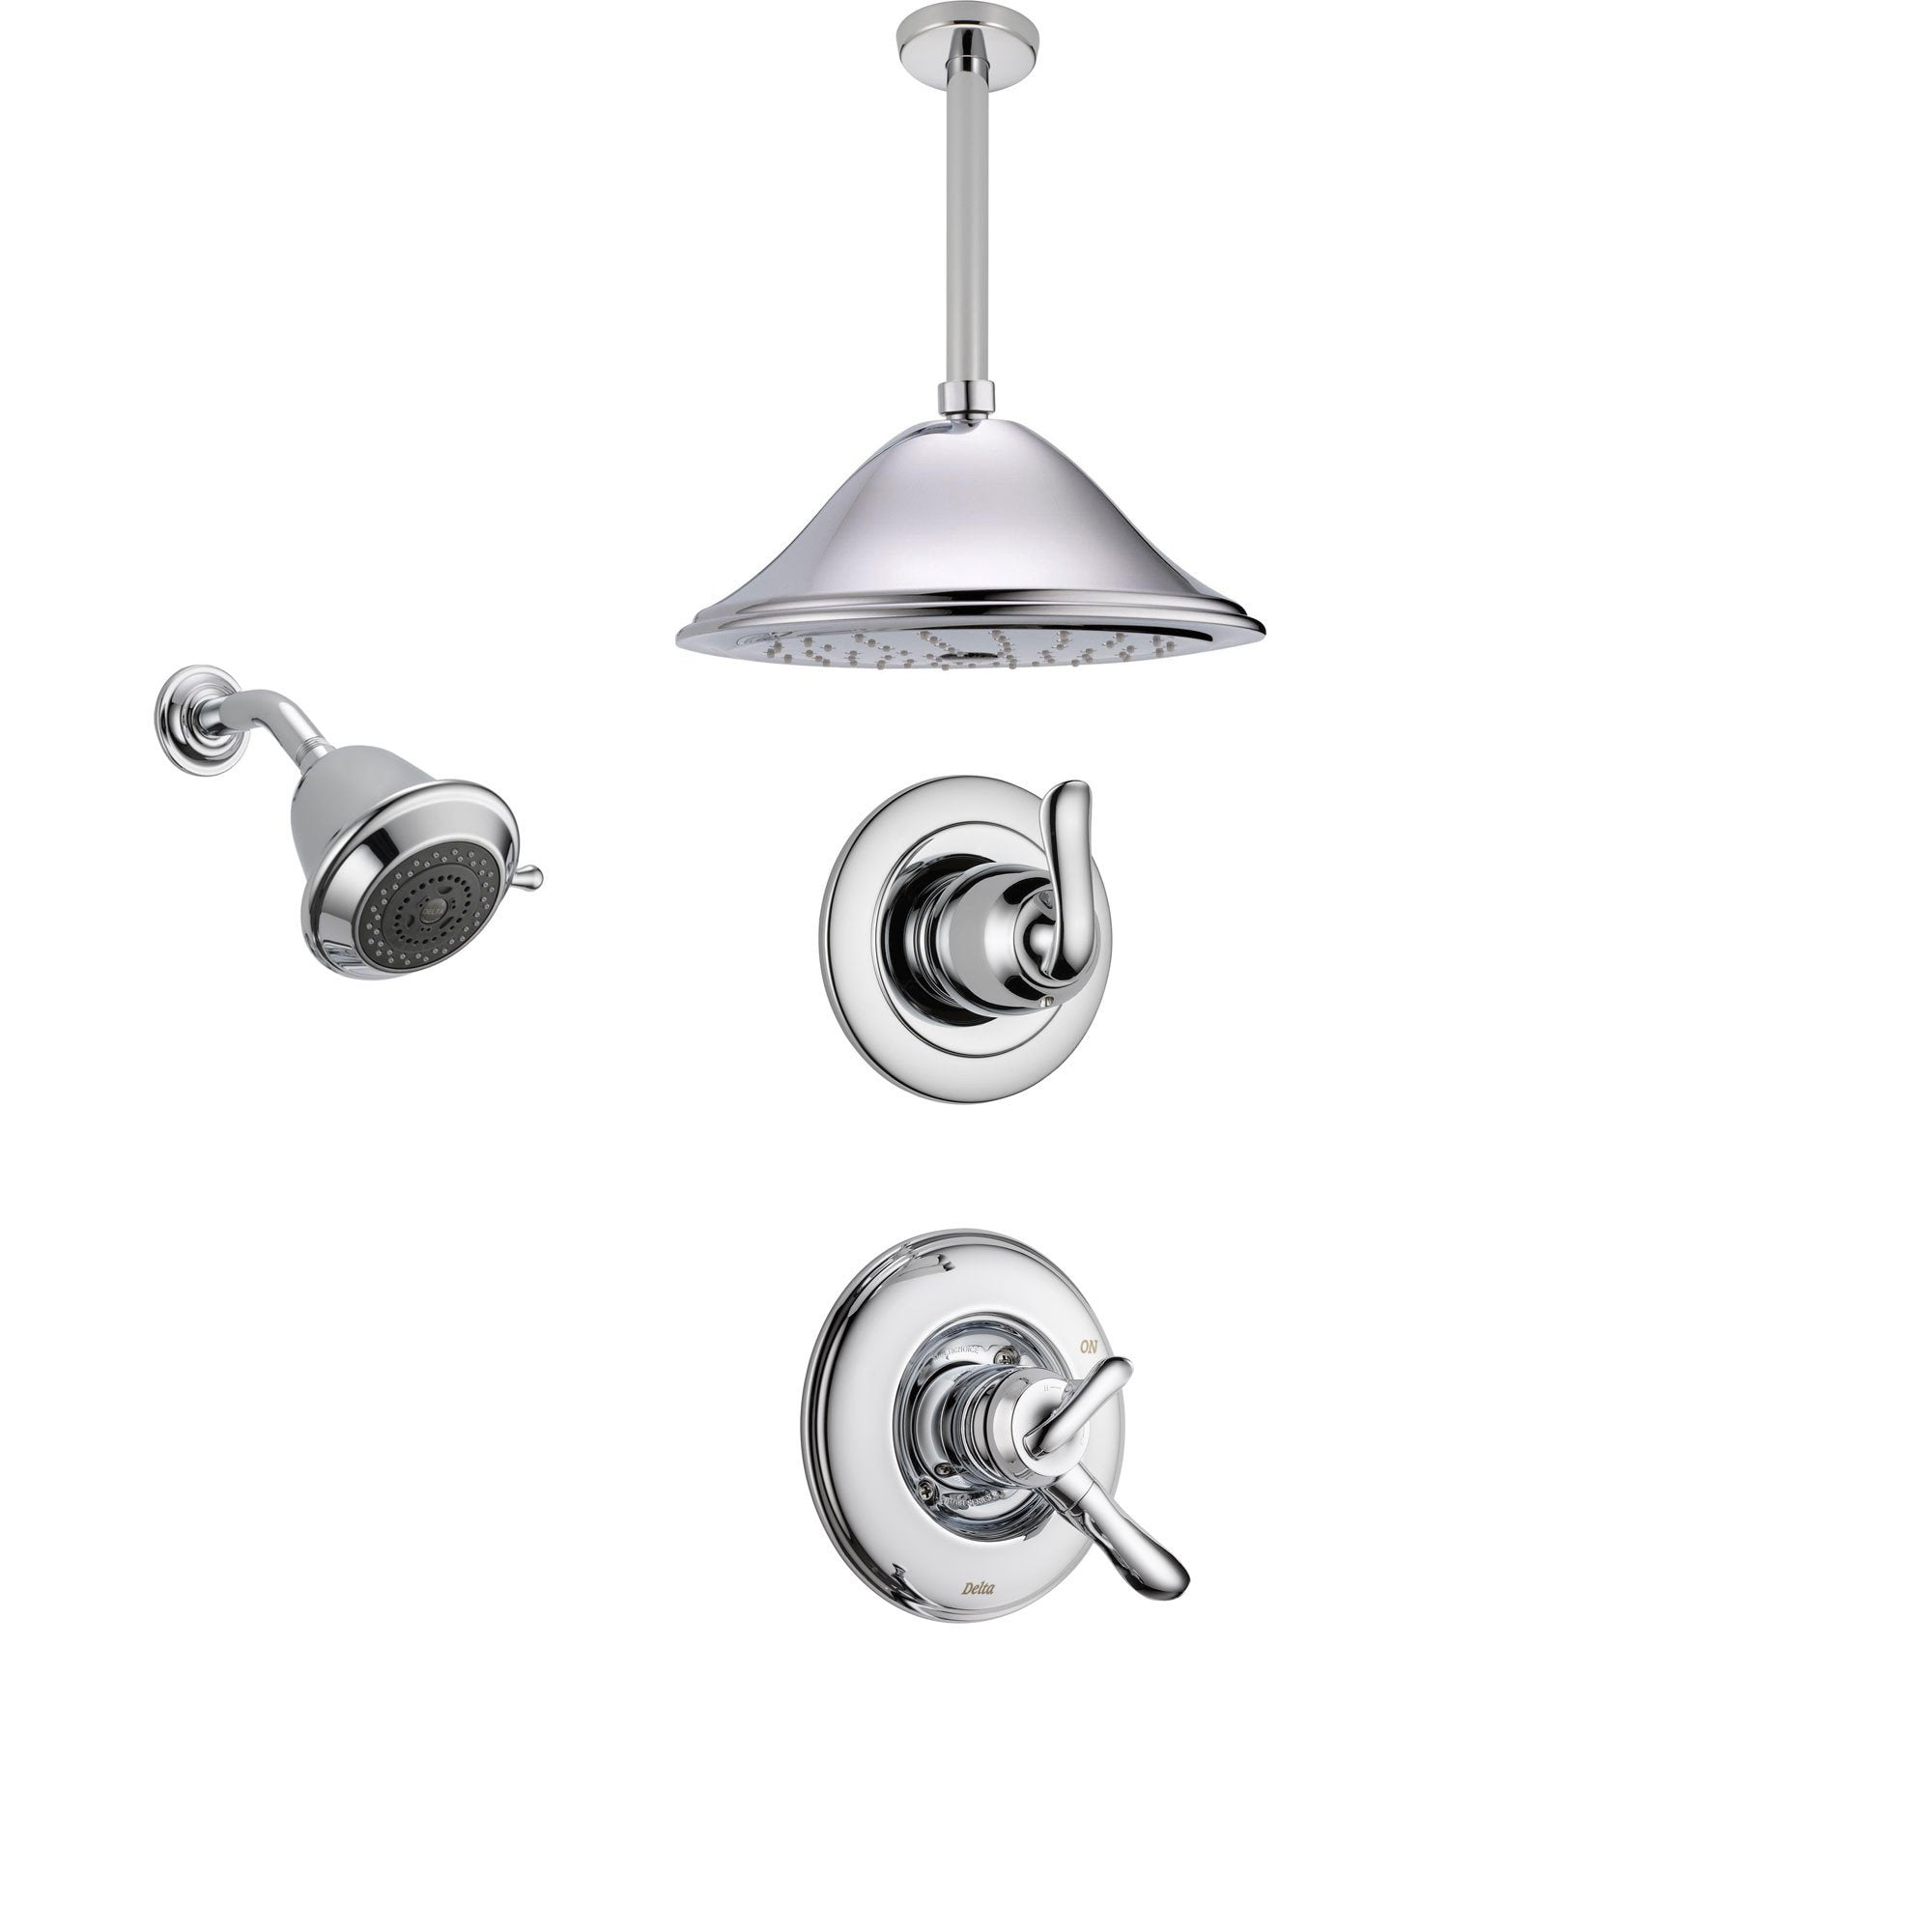 Delta Linden Chrome Shower System with Dual Control Shower Handle, 3-setting Diverter, Large Ceiling Mount Rain Shower Head, and Wall Mount Showerhead SS179485